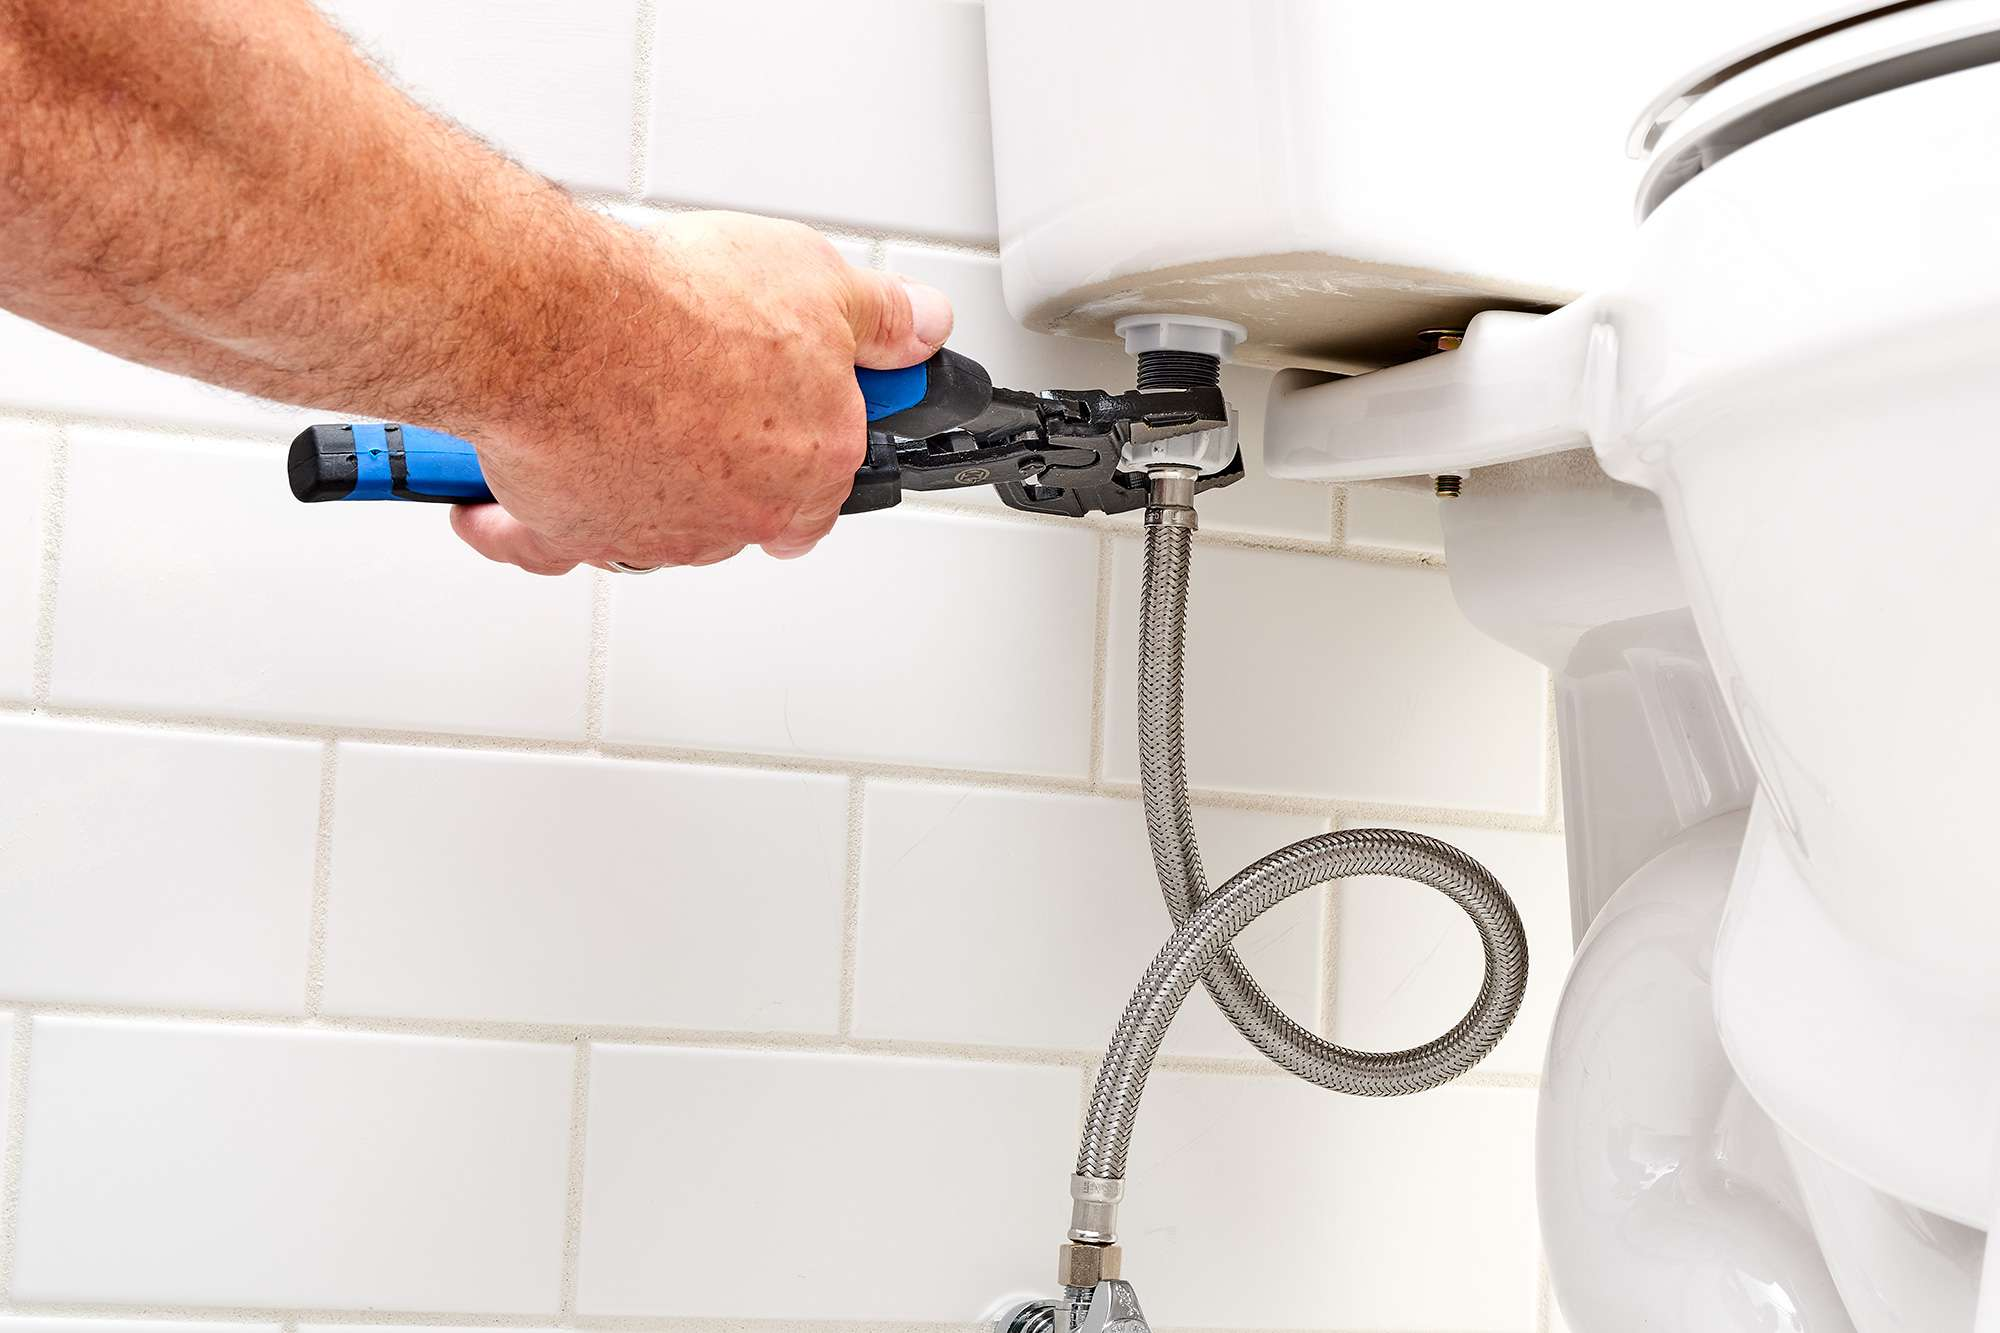 Disconnecting water supply tube with wrench to remove toilet fill valve